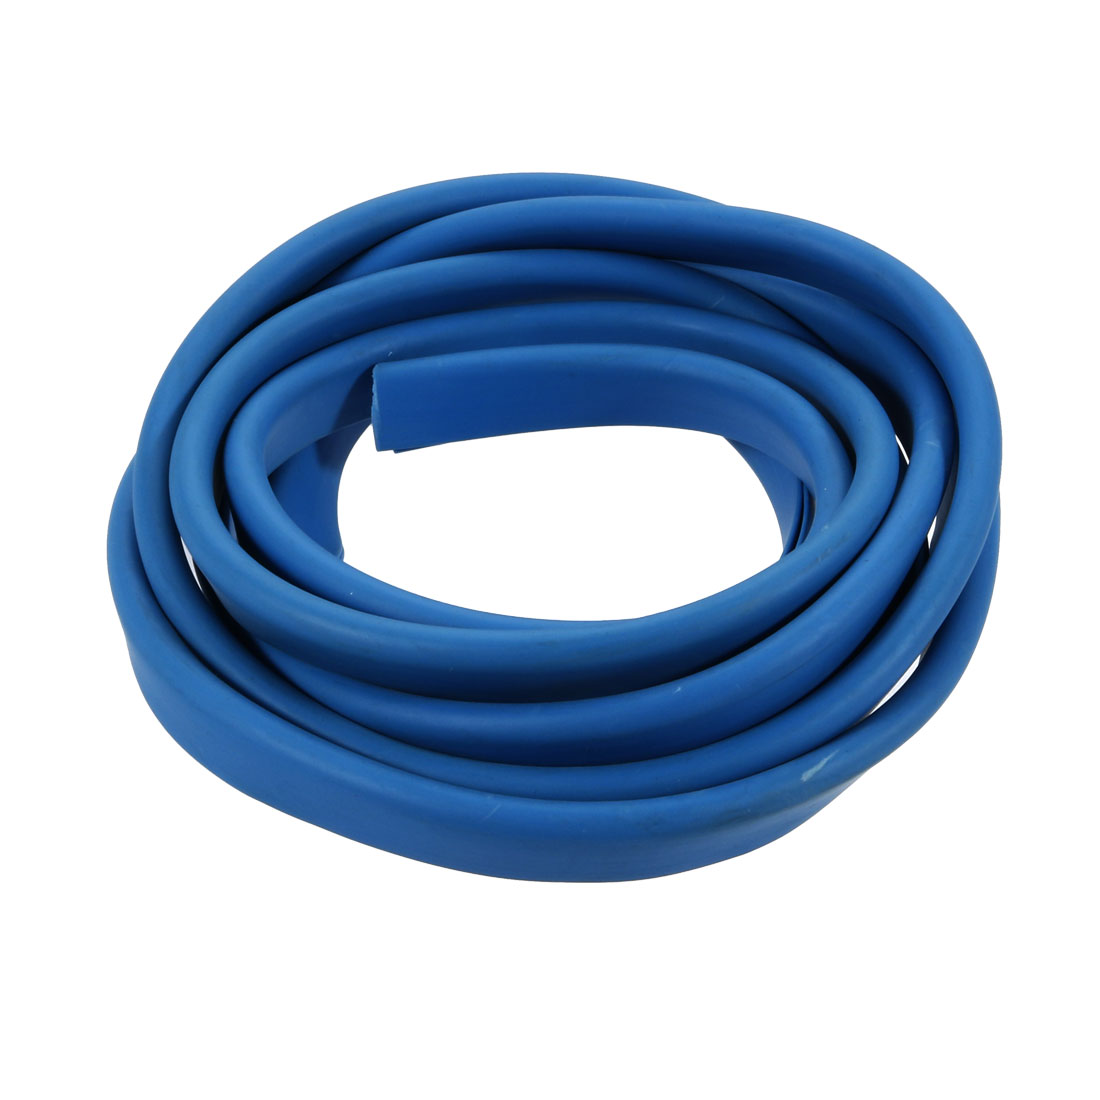 2M Long 2mm Groove Wide 13mm Height Rubber Hollow Air Sealed Seal Strip Blue